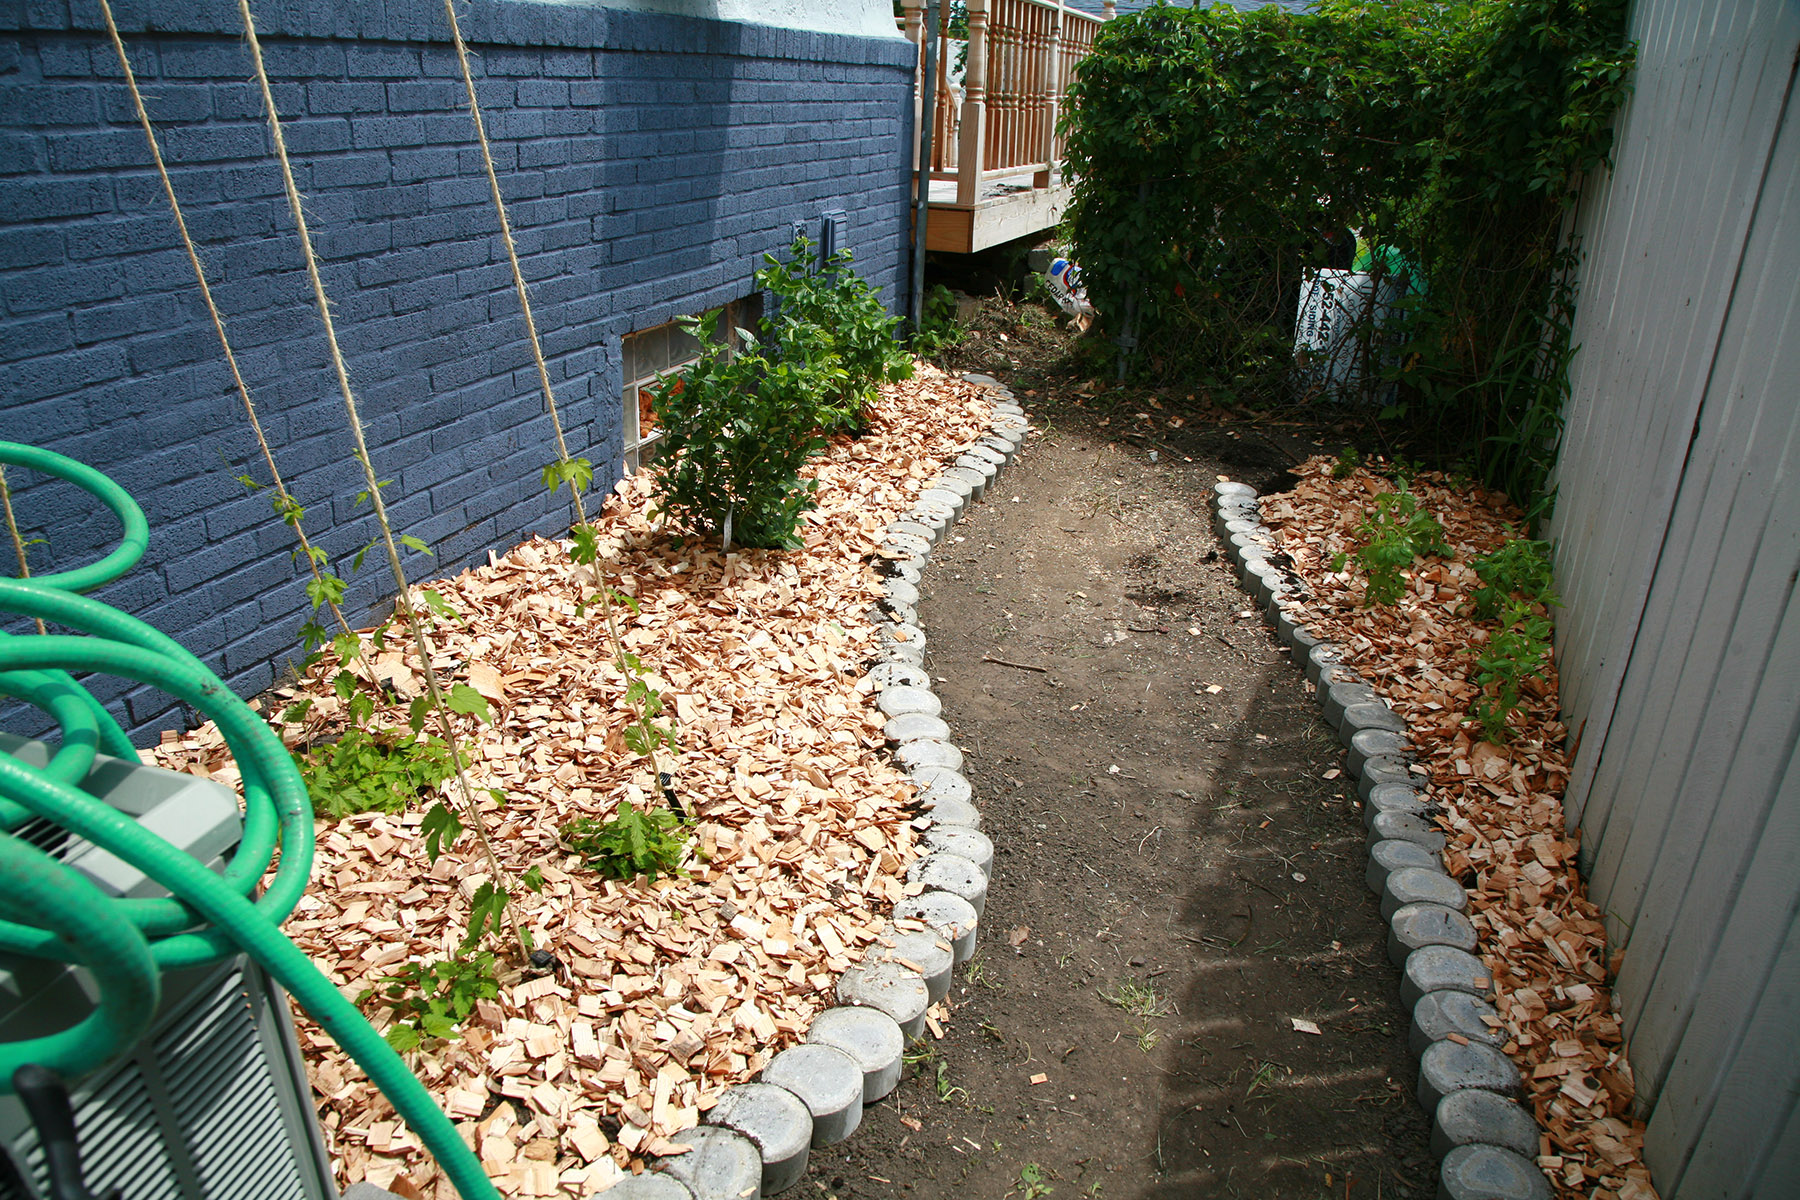 Curved bricks separating the dirt path from strawberry patches